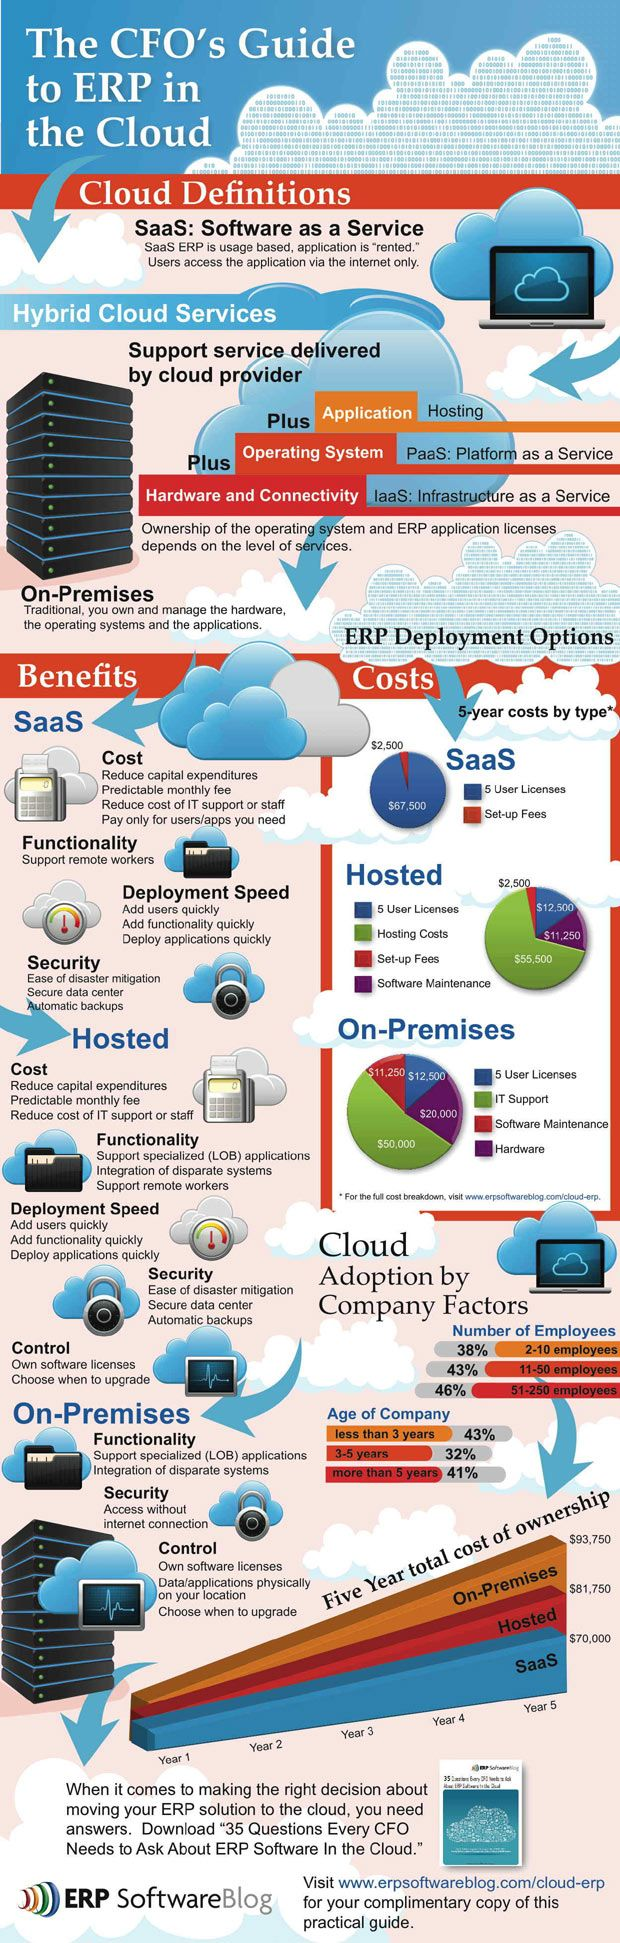 The CEOs guide to cloud and the ERP.